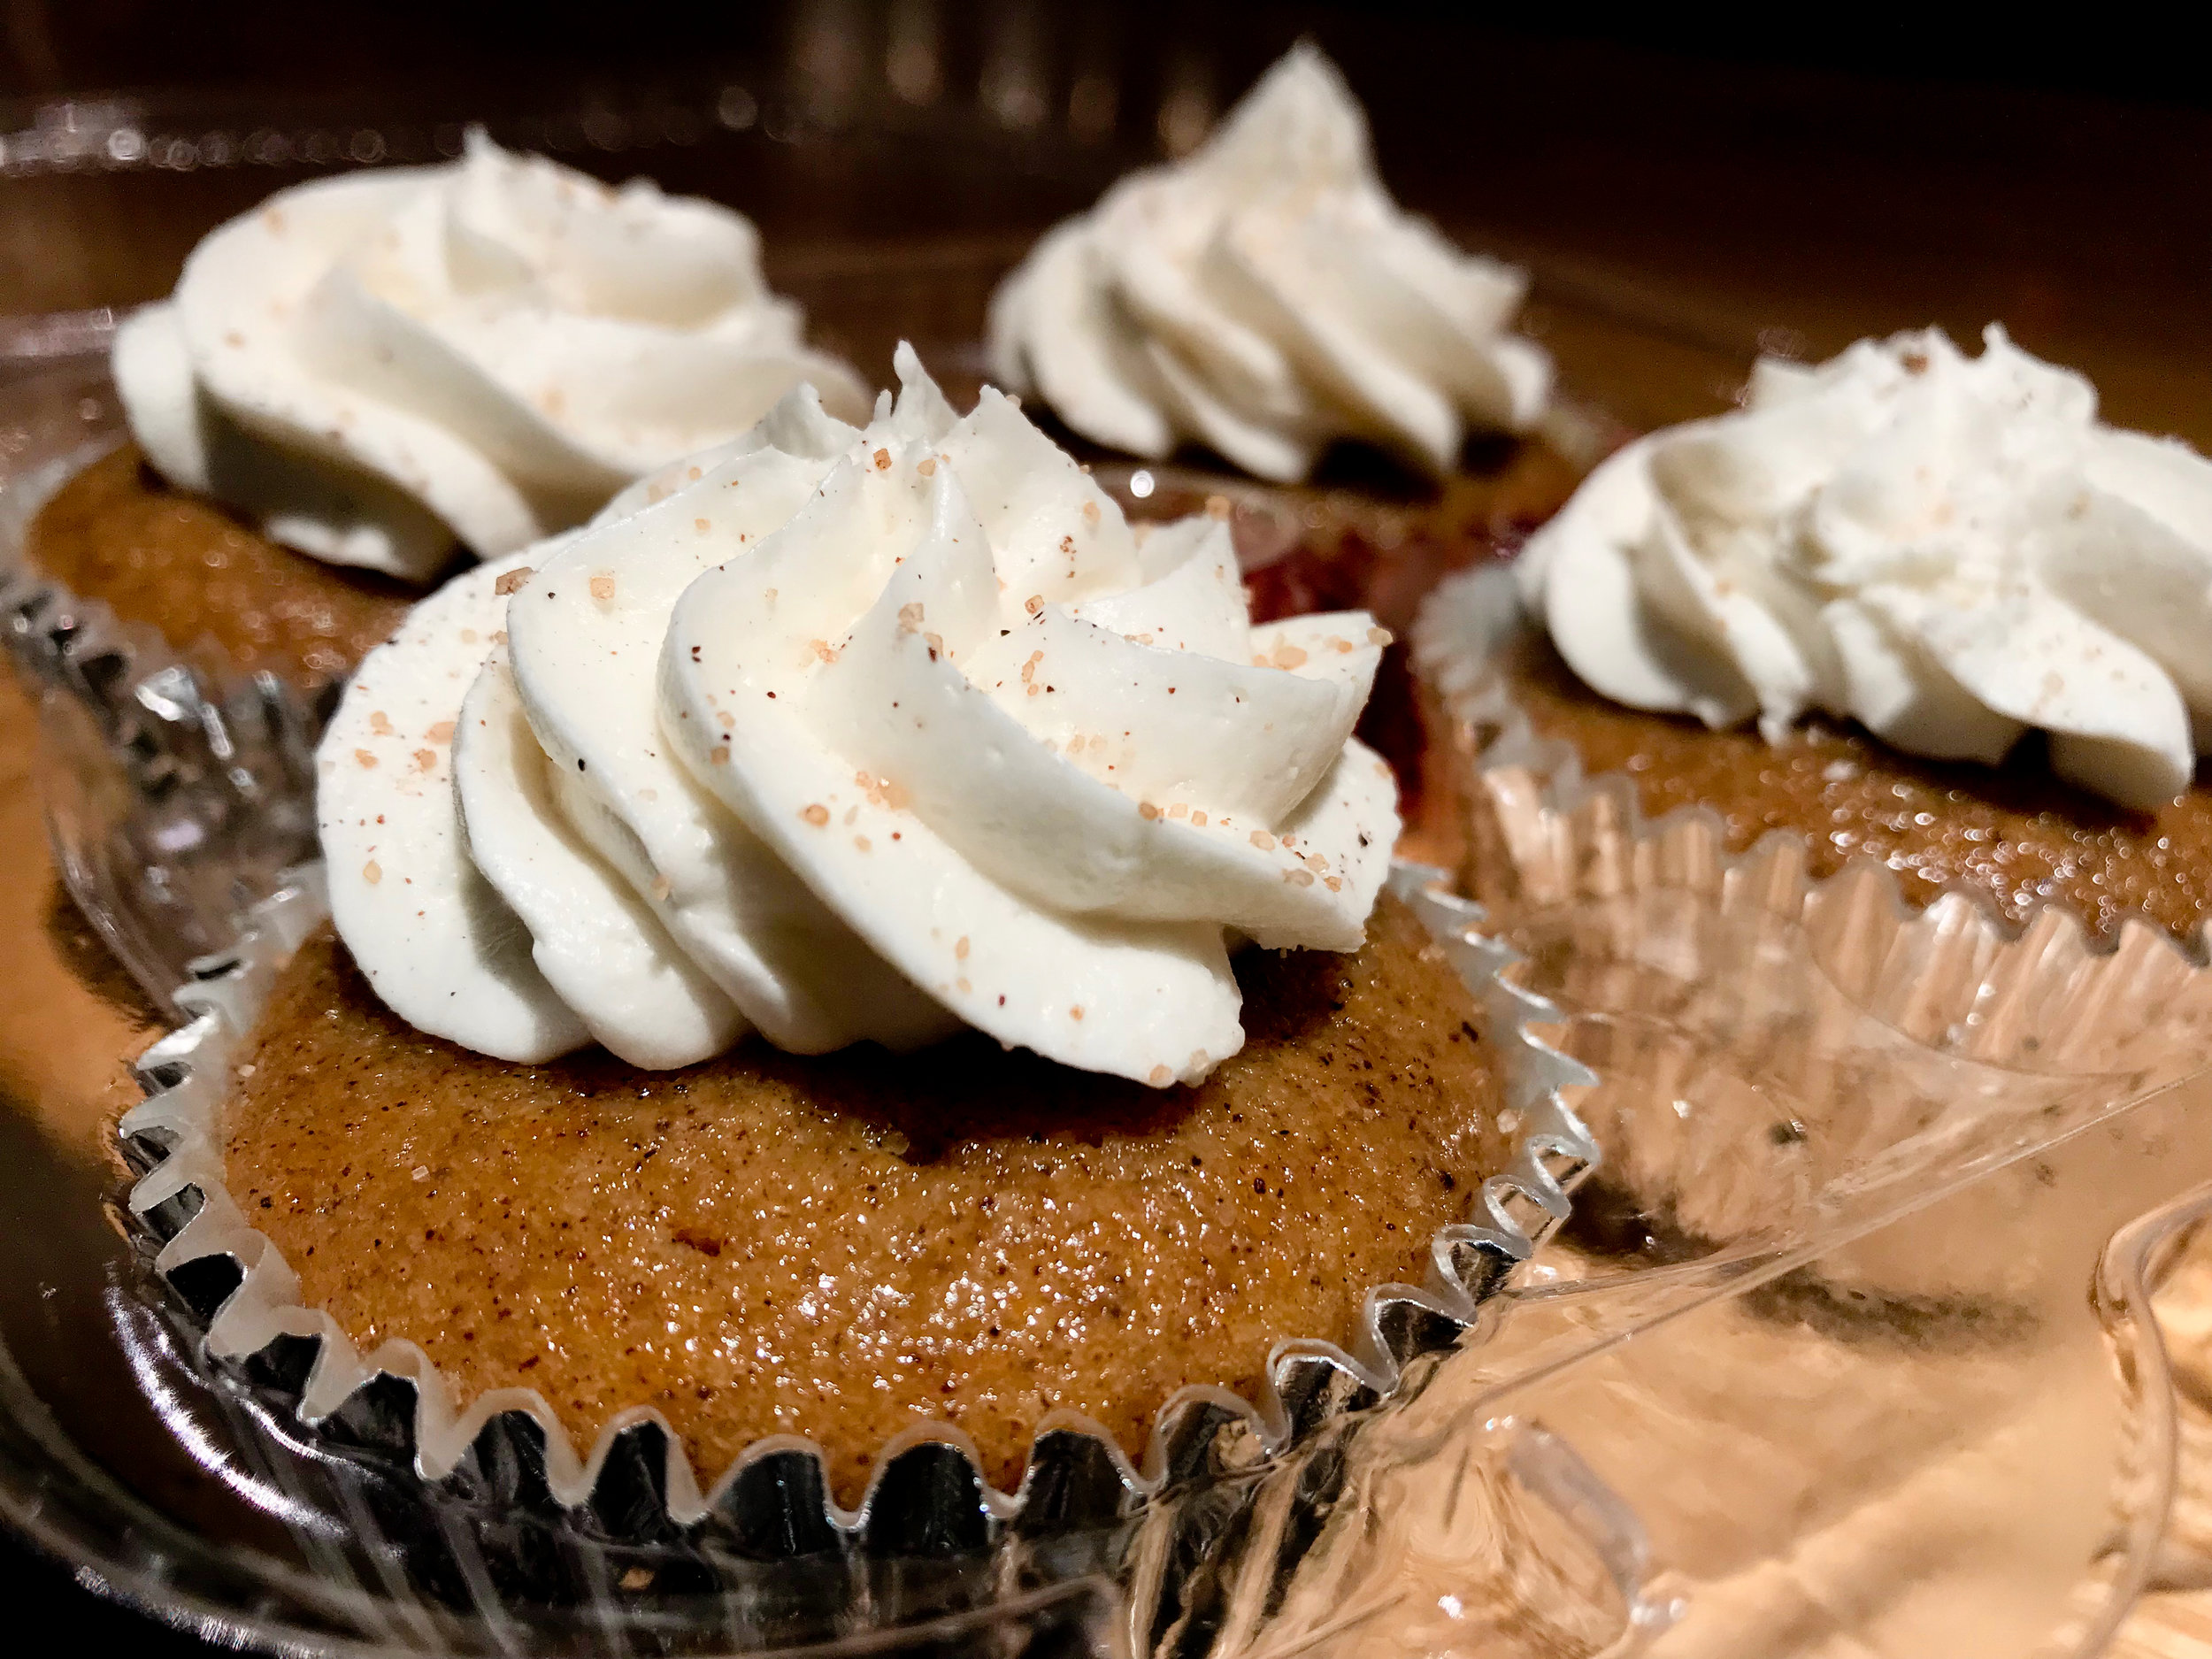 Sweet Potato Cupcake from the Uptown Vegan Sweets and Treats